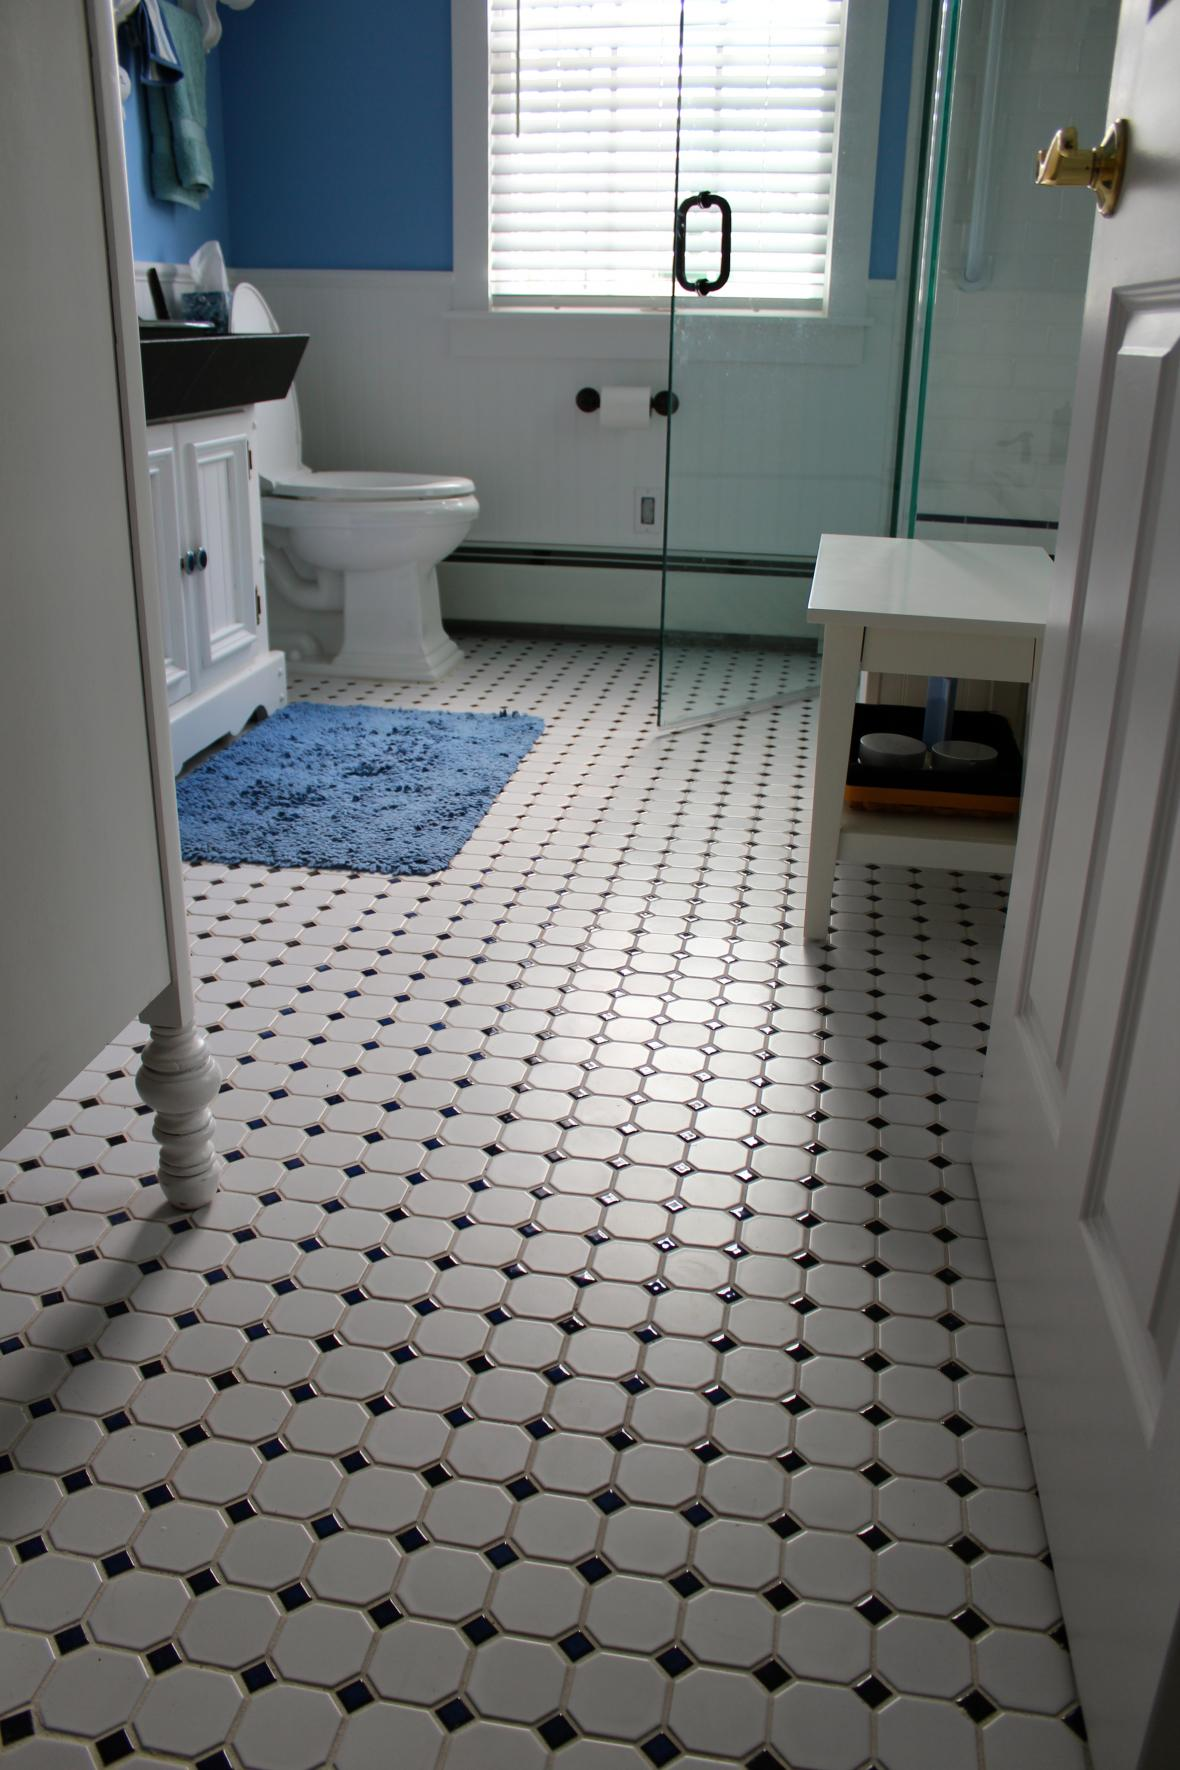 Bathroom Floor Ceramic Tile Patterns 2017 2018 Best Cars Reviews